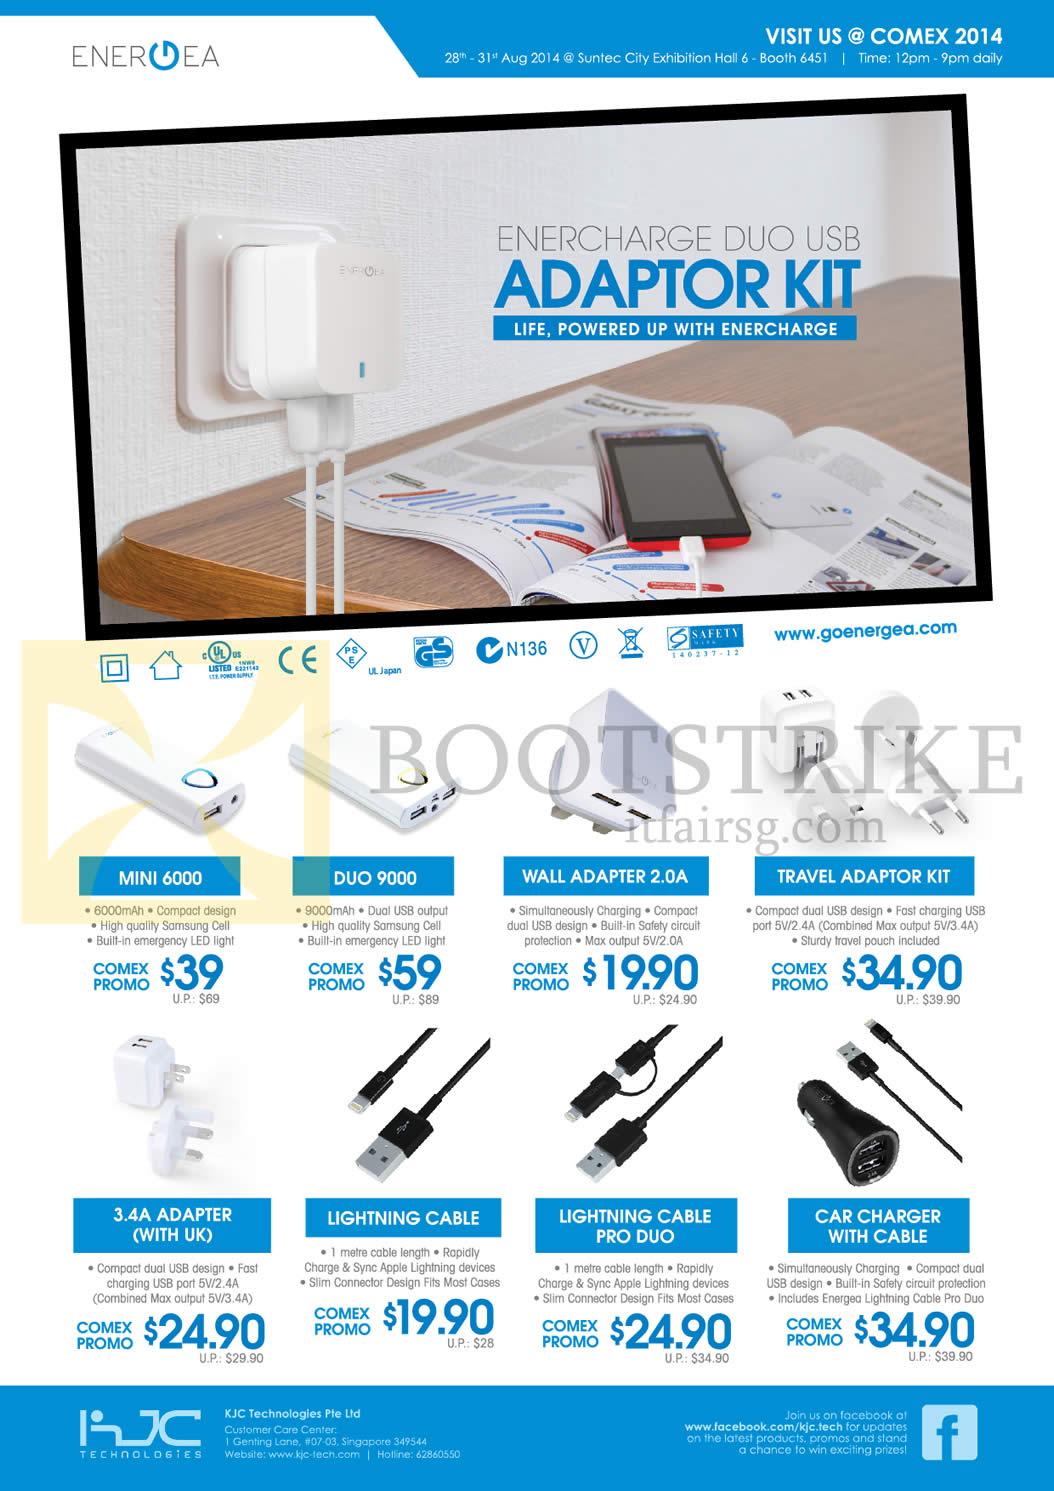 COMEX 2014 price list image brochure of KJC Technologies Adapter Kits Mini 6000, Duo 9000, Wall Adapter 2.0A, Travel Adaptor Kit, 3.4A Adapter, Lightening Cable, Pro Duo, Car Charger